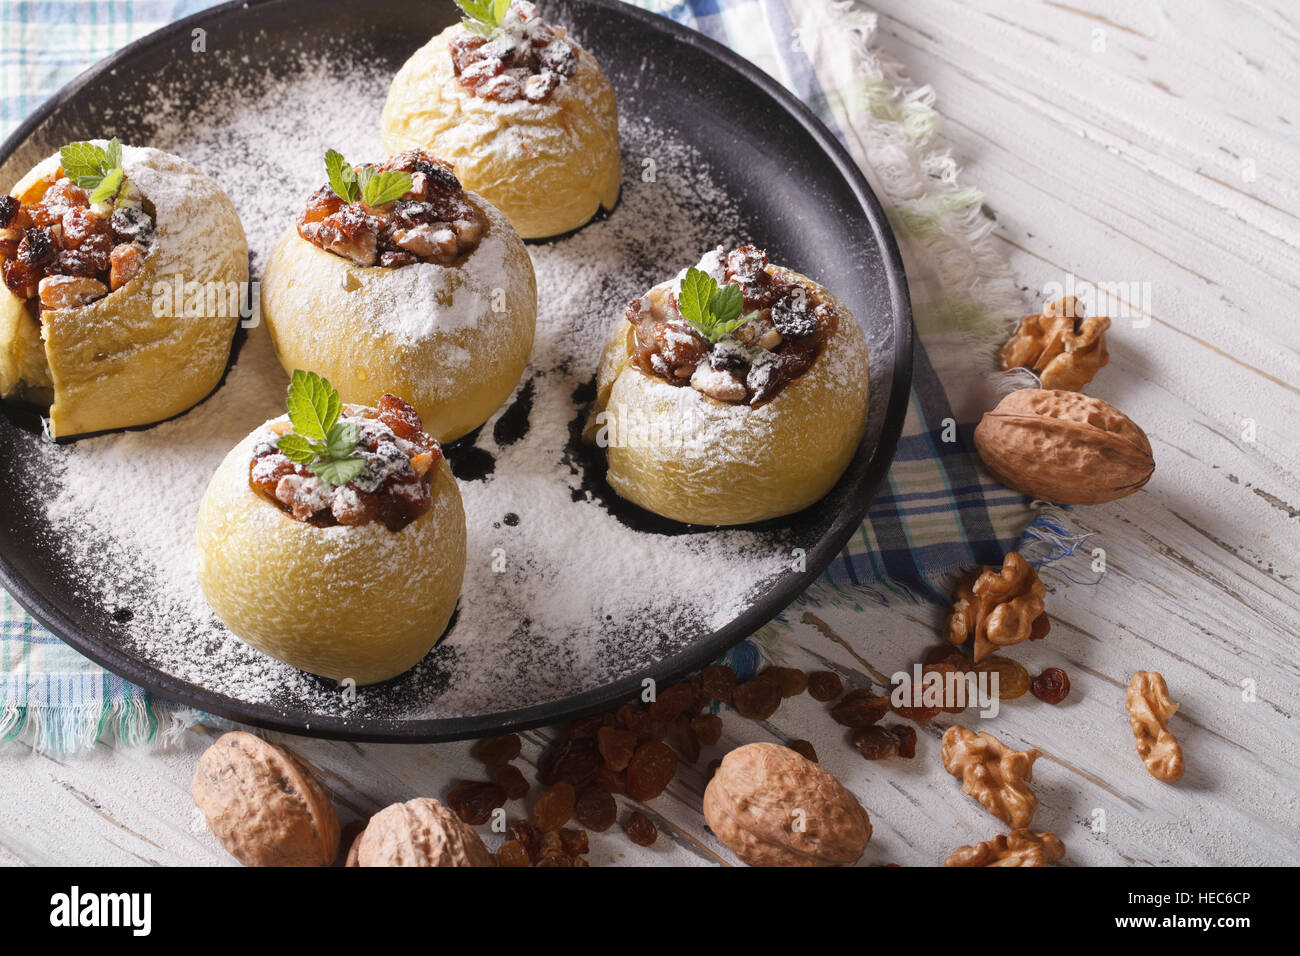 Delicious baked apples with raisins, walnuts and honey on a plate close-up horizontal - Stock Image